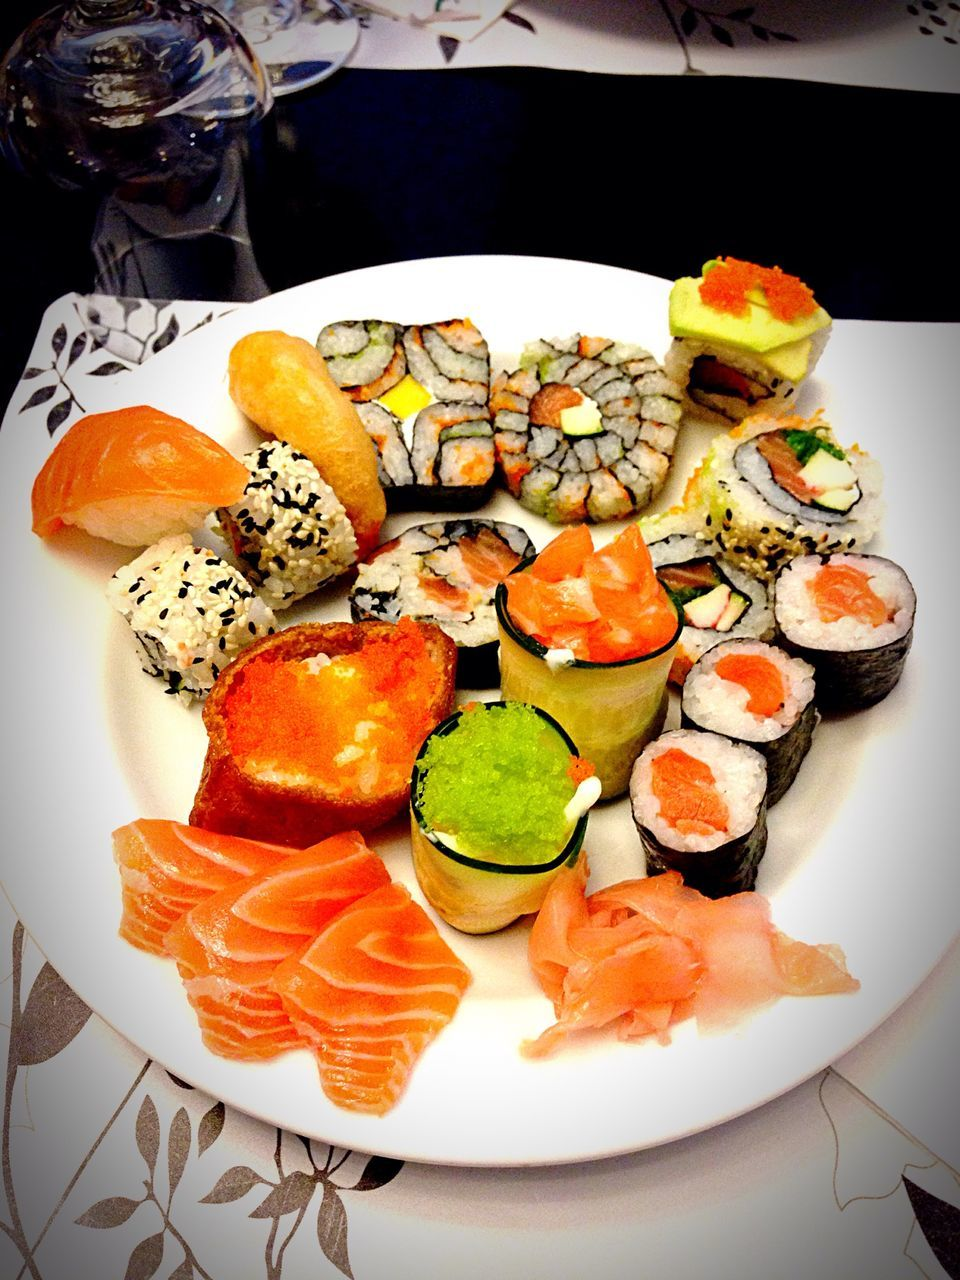 food and drink, seafood, plate, food, freshness, healthy eating, sushi, ready-to-eat, still life, serving size, salmon, table, no people, high angle view, indoors, japanese food, slice, indulgence, prawn, variation, shrimp, food styling, close-up, day